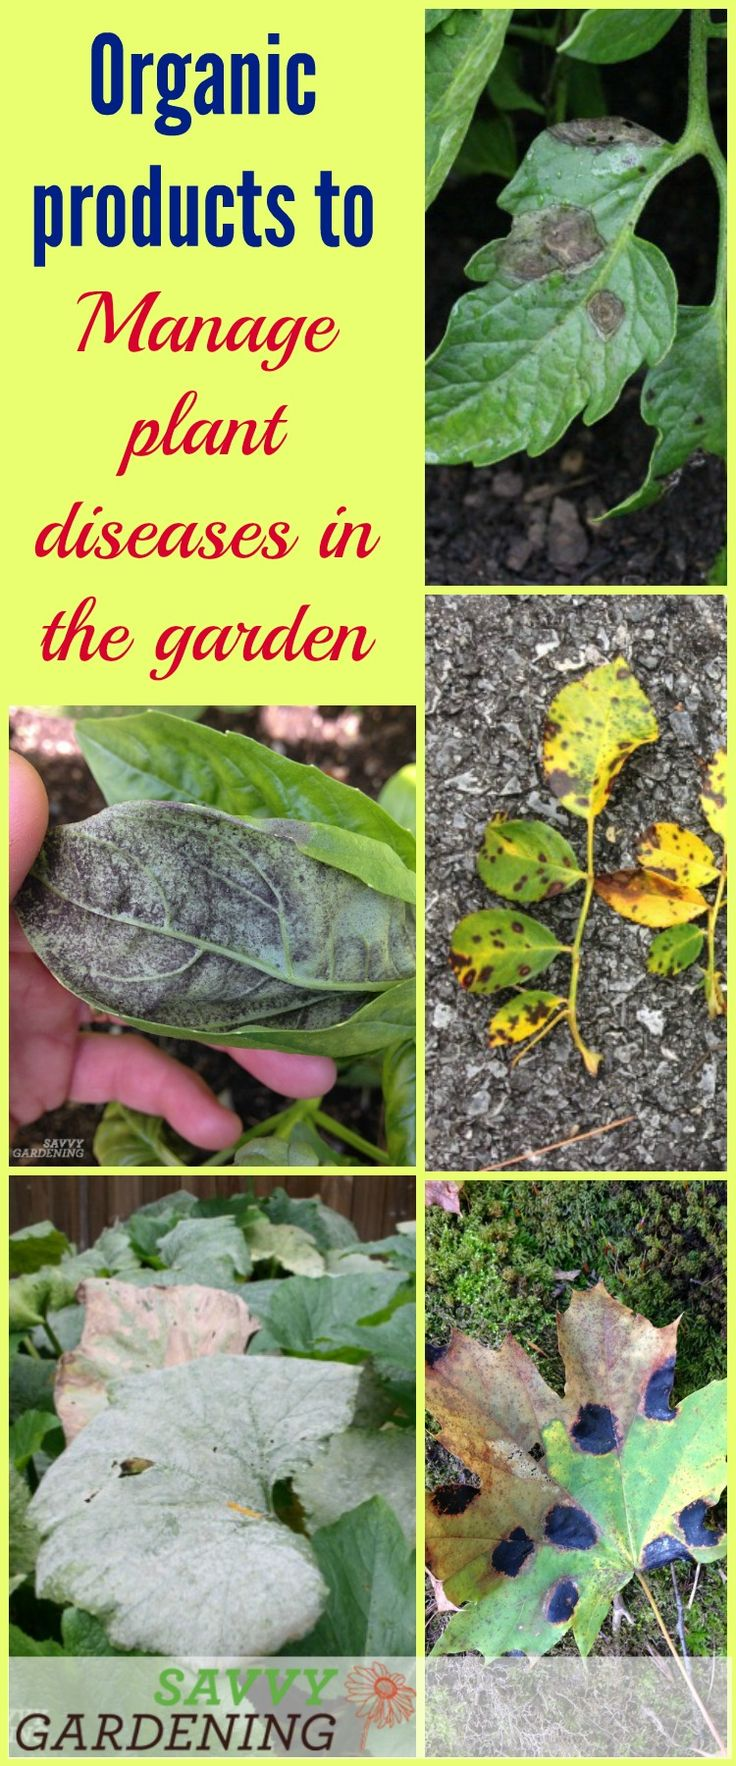 Prevent and control plant diseases in the garden with these organic products.